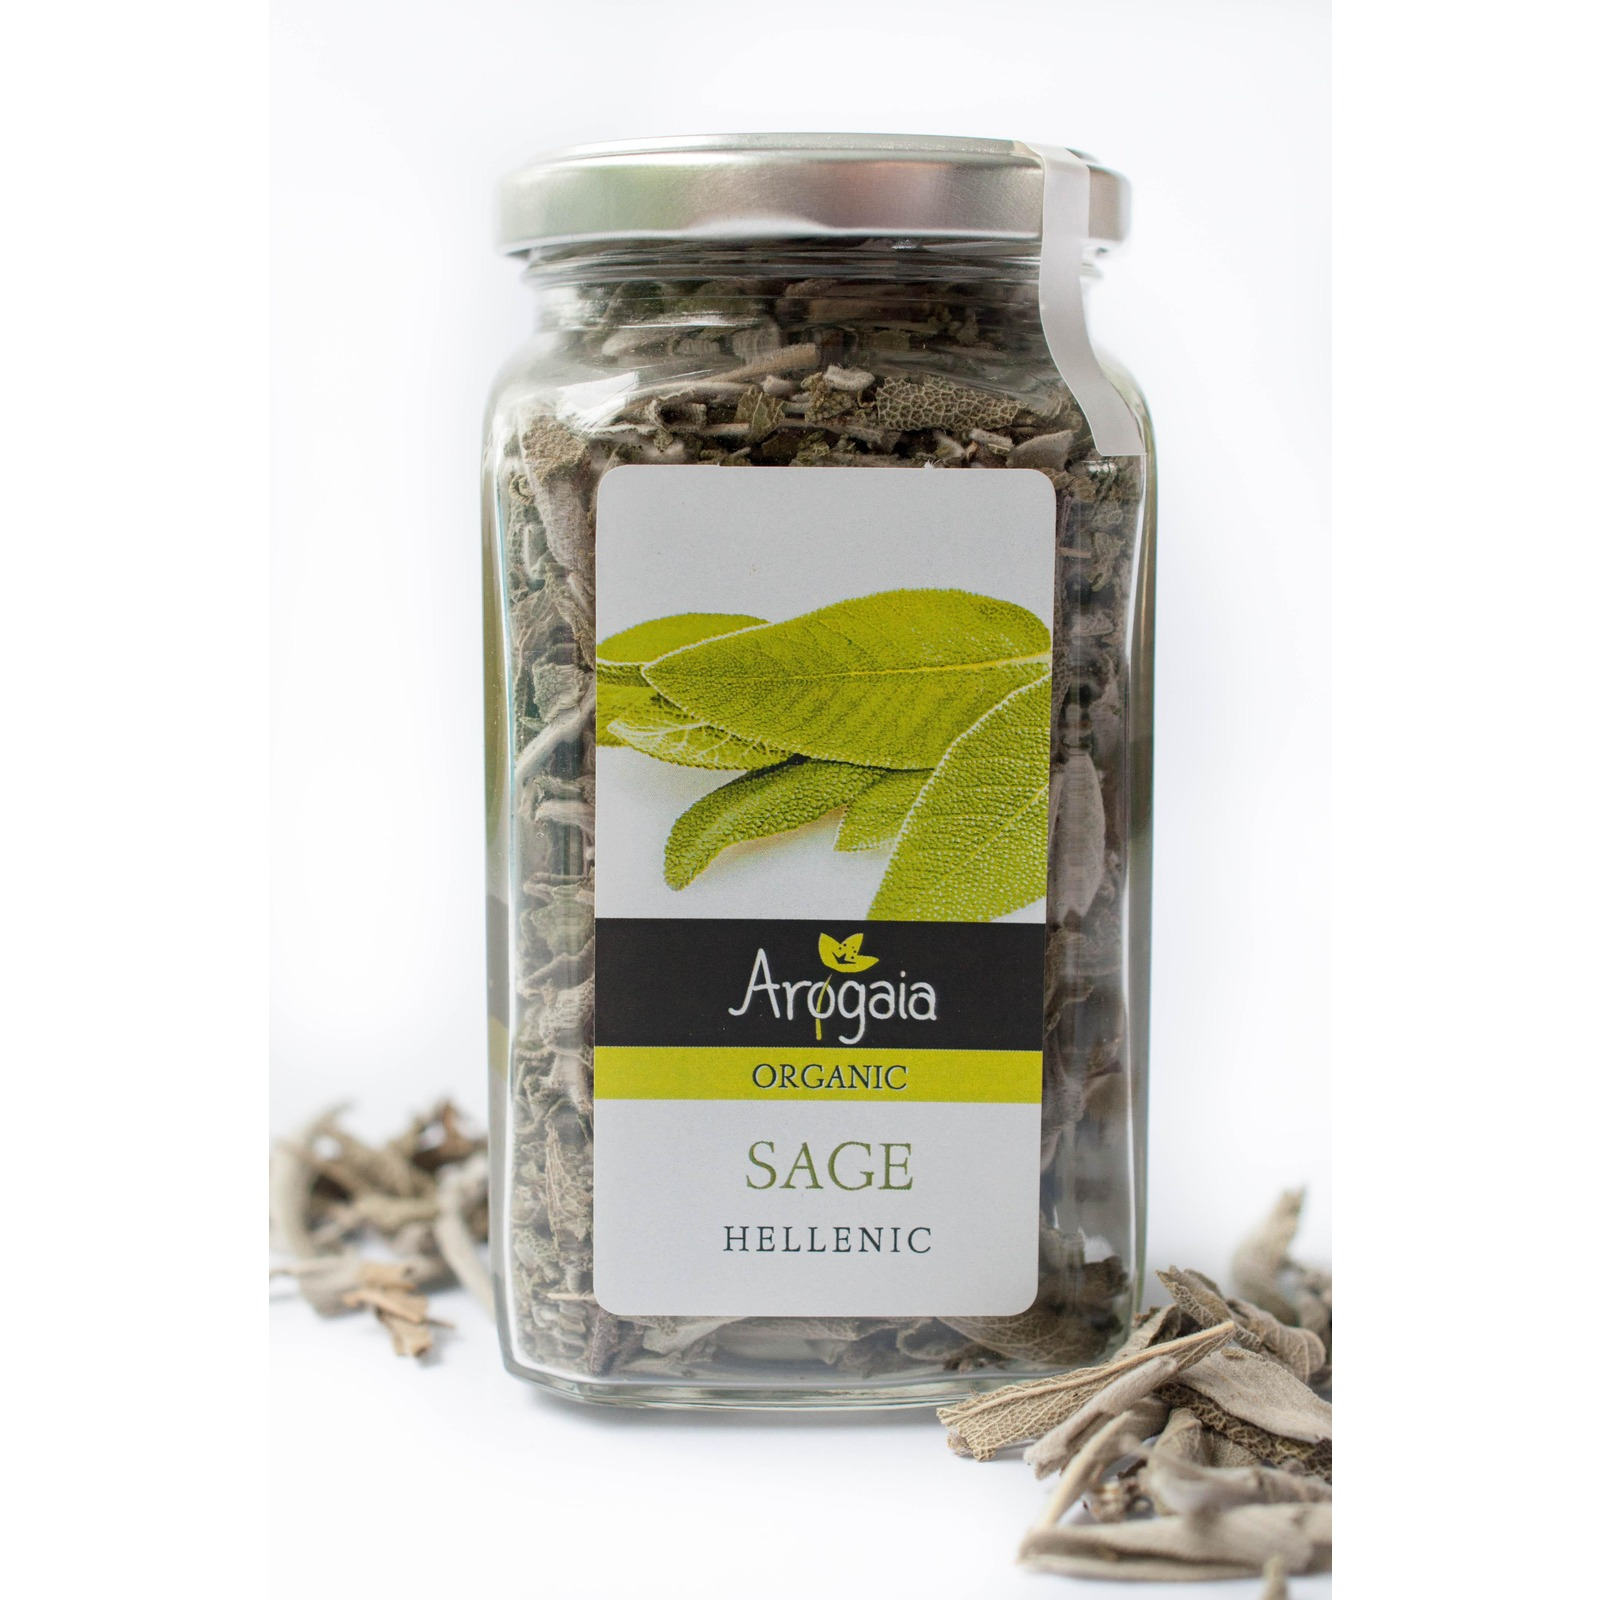 Arogaia Greek Organic Sage Jar